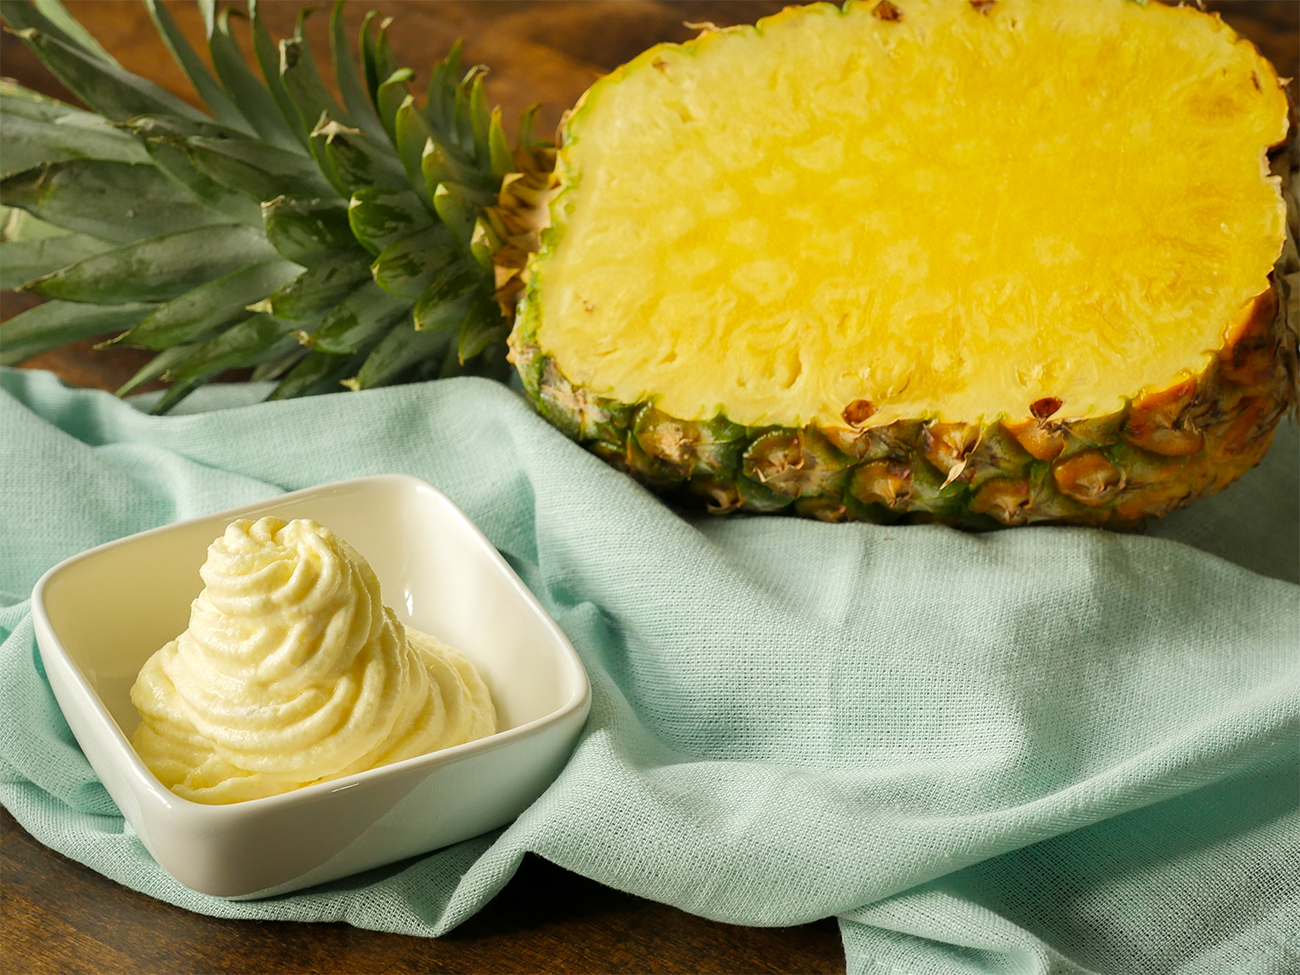 Dole Whip Horizontal 1